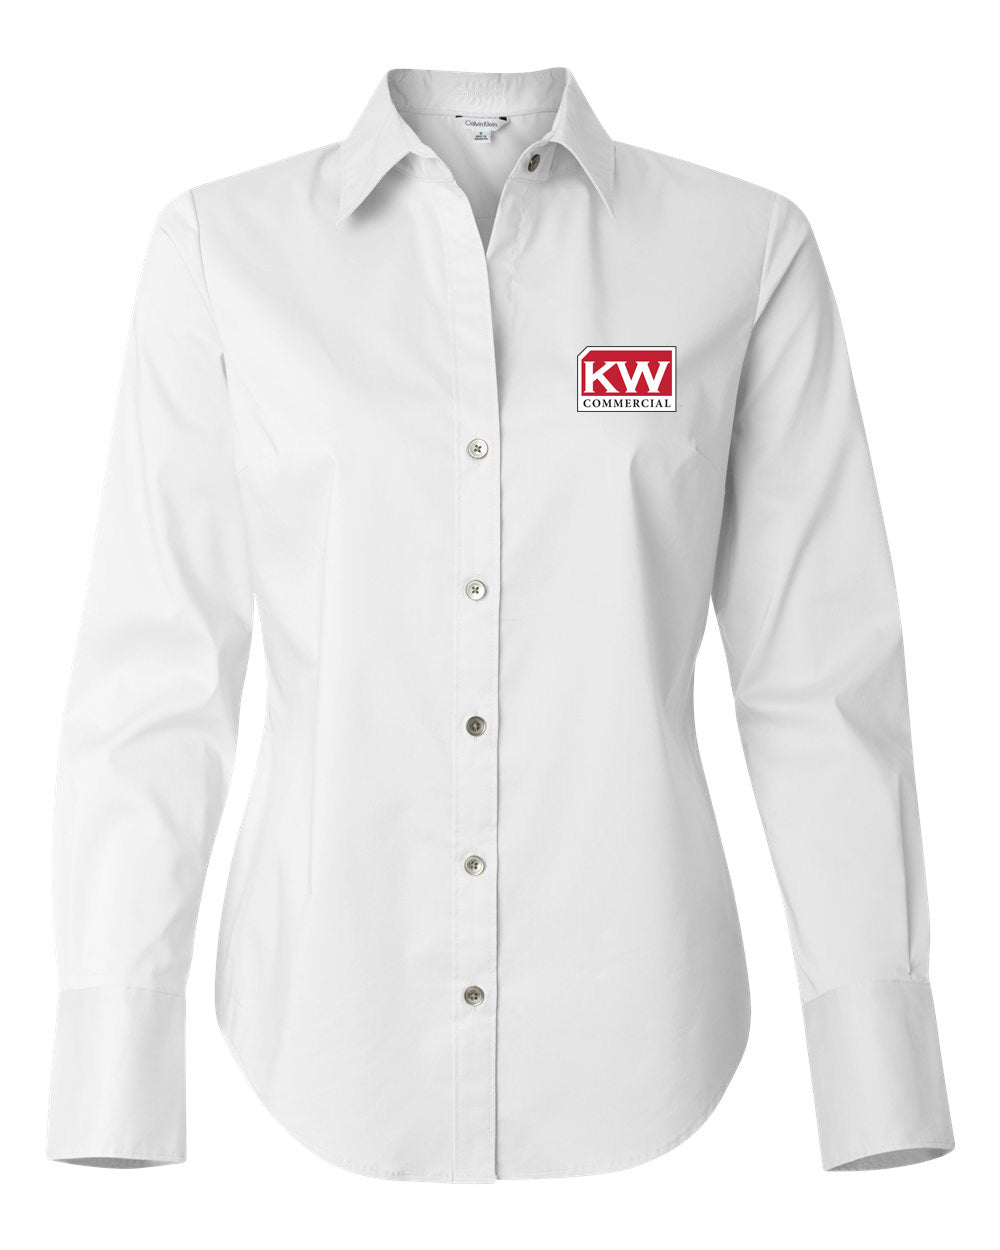 Women's KW Commercial Calvin Klein Button Downs